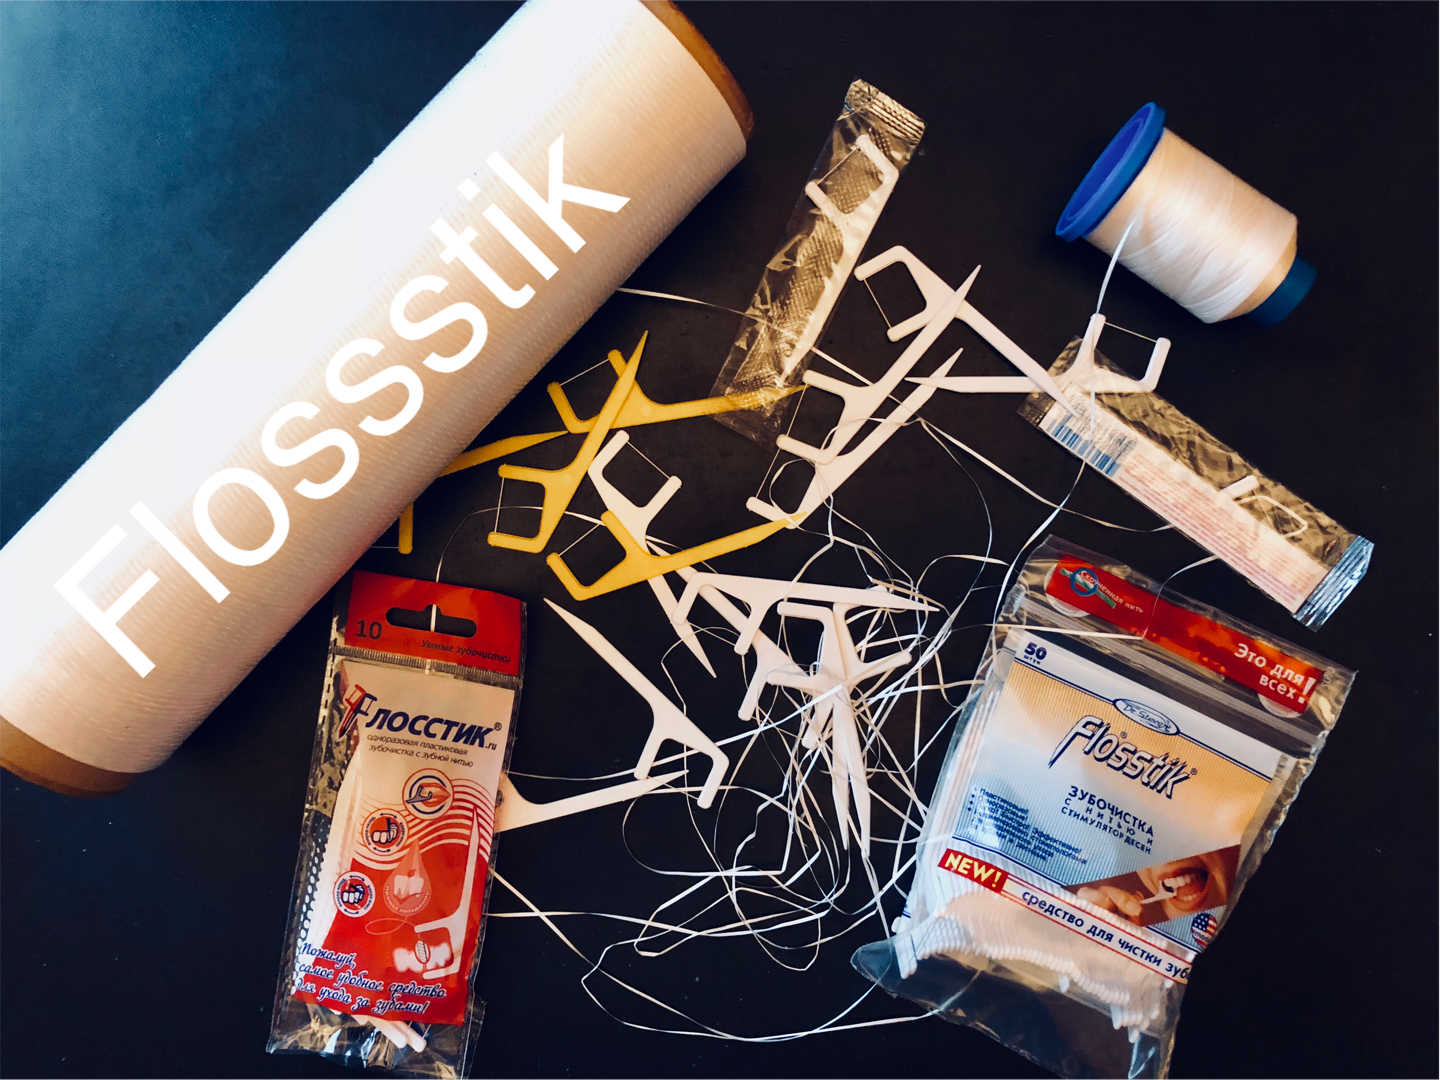 Open your own toothpick production with floss.